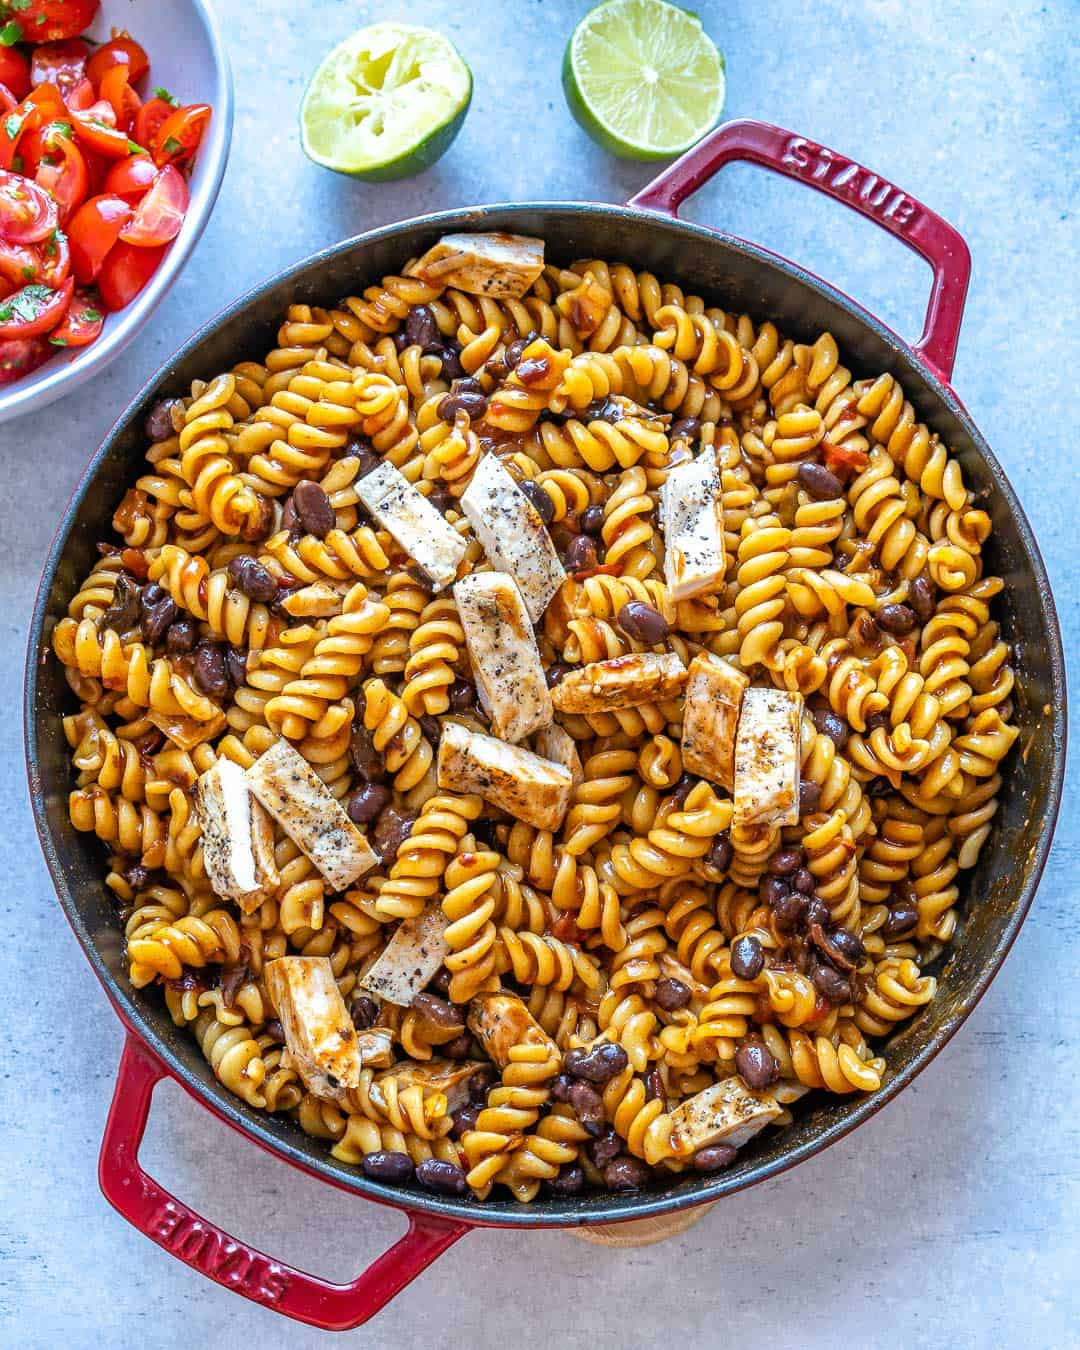 Grilled chicken added to pot of pasta.